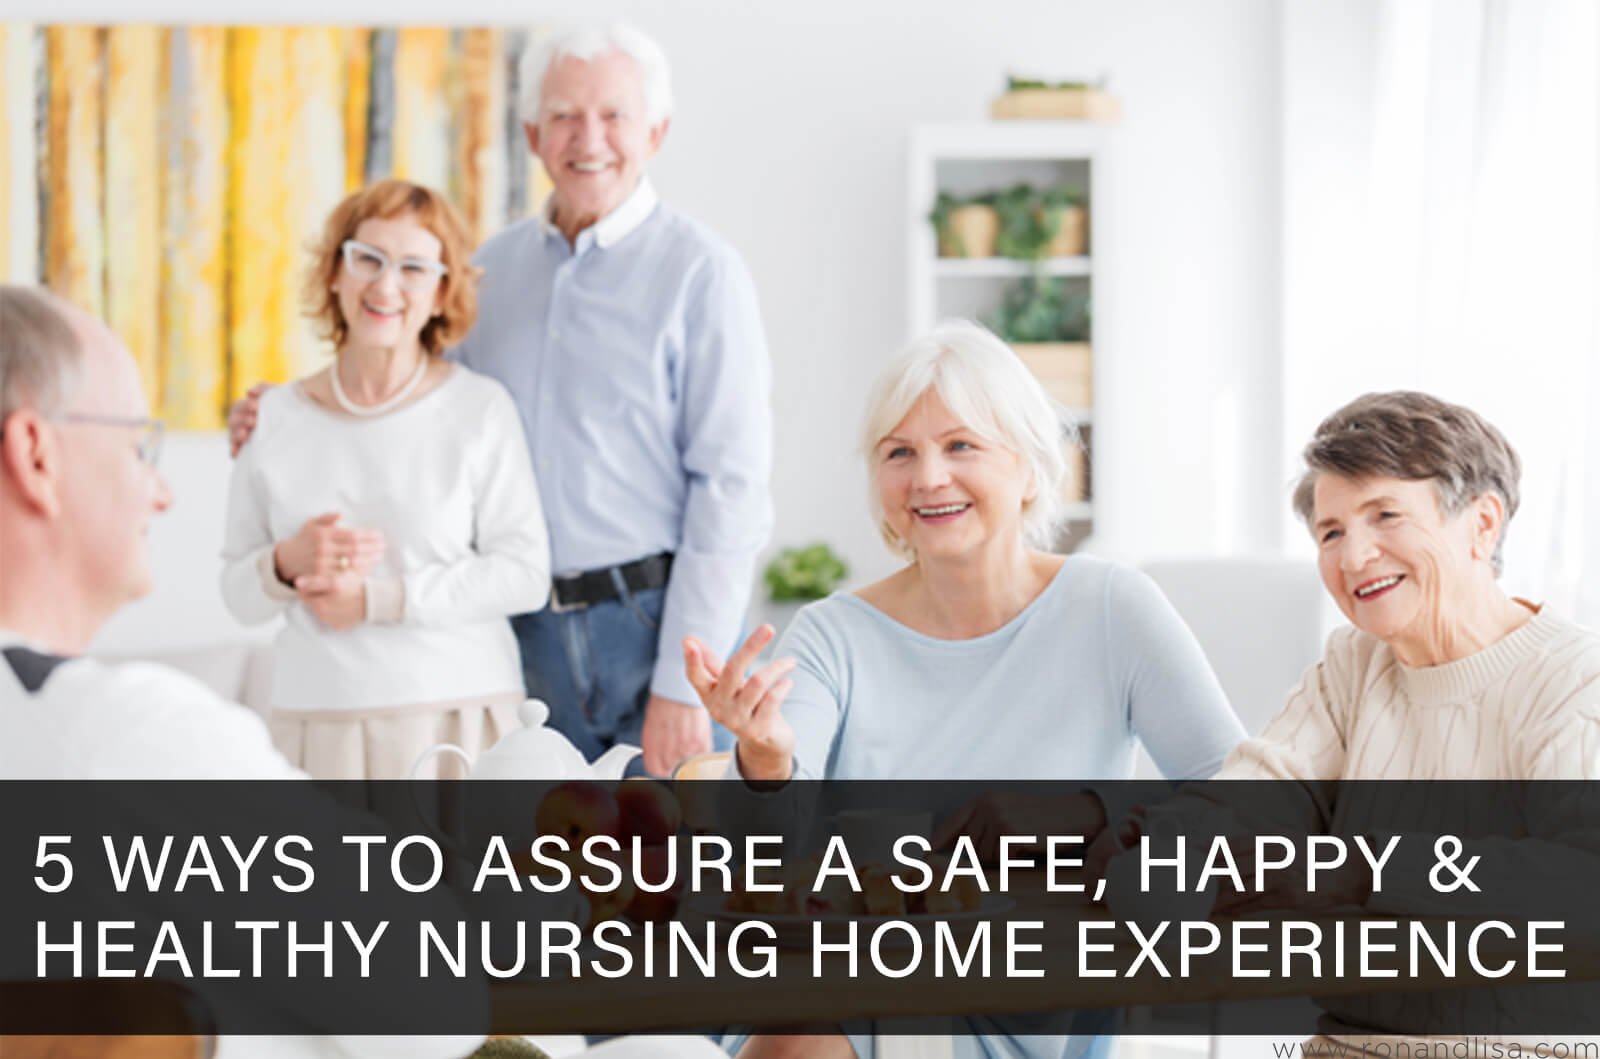 5 Ways to Assure a Safe, Happy & Healthy Nursing Home Experience